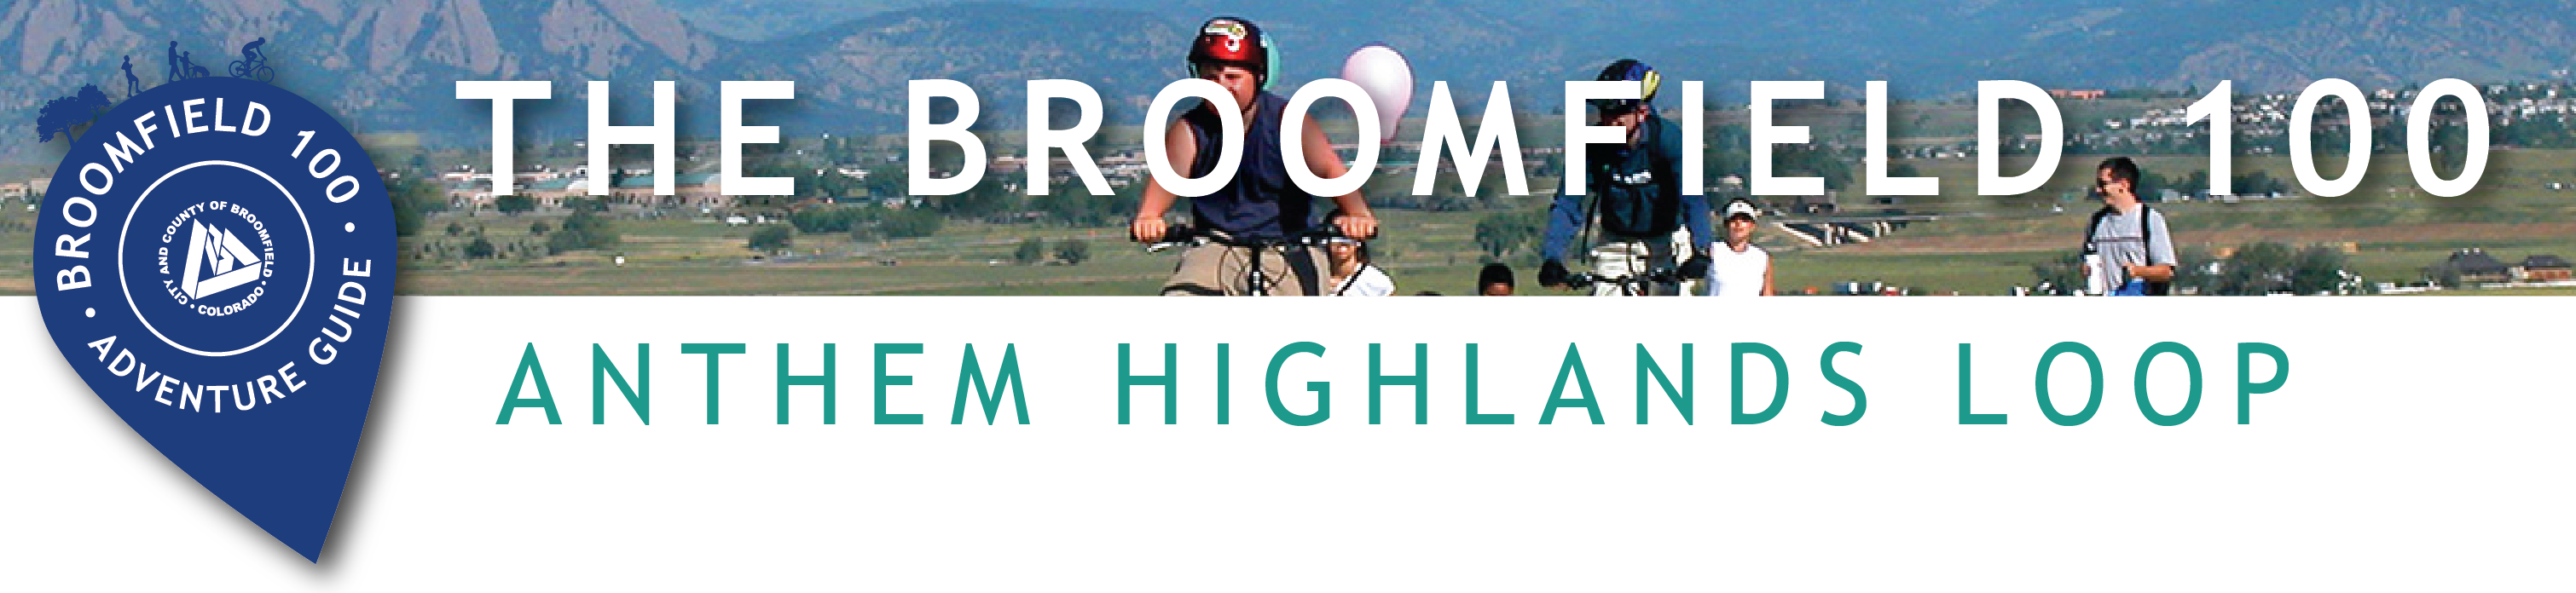 2019 Broomfield100 web banners_anthem highlands